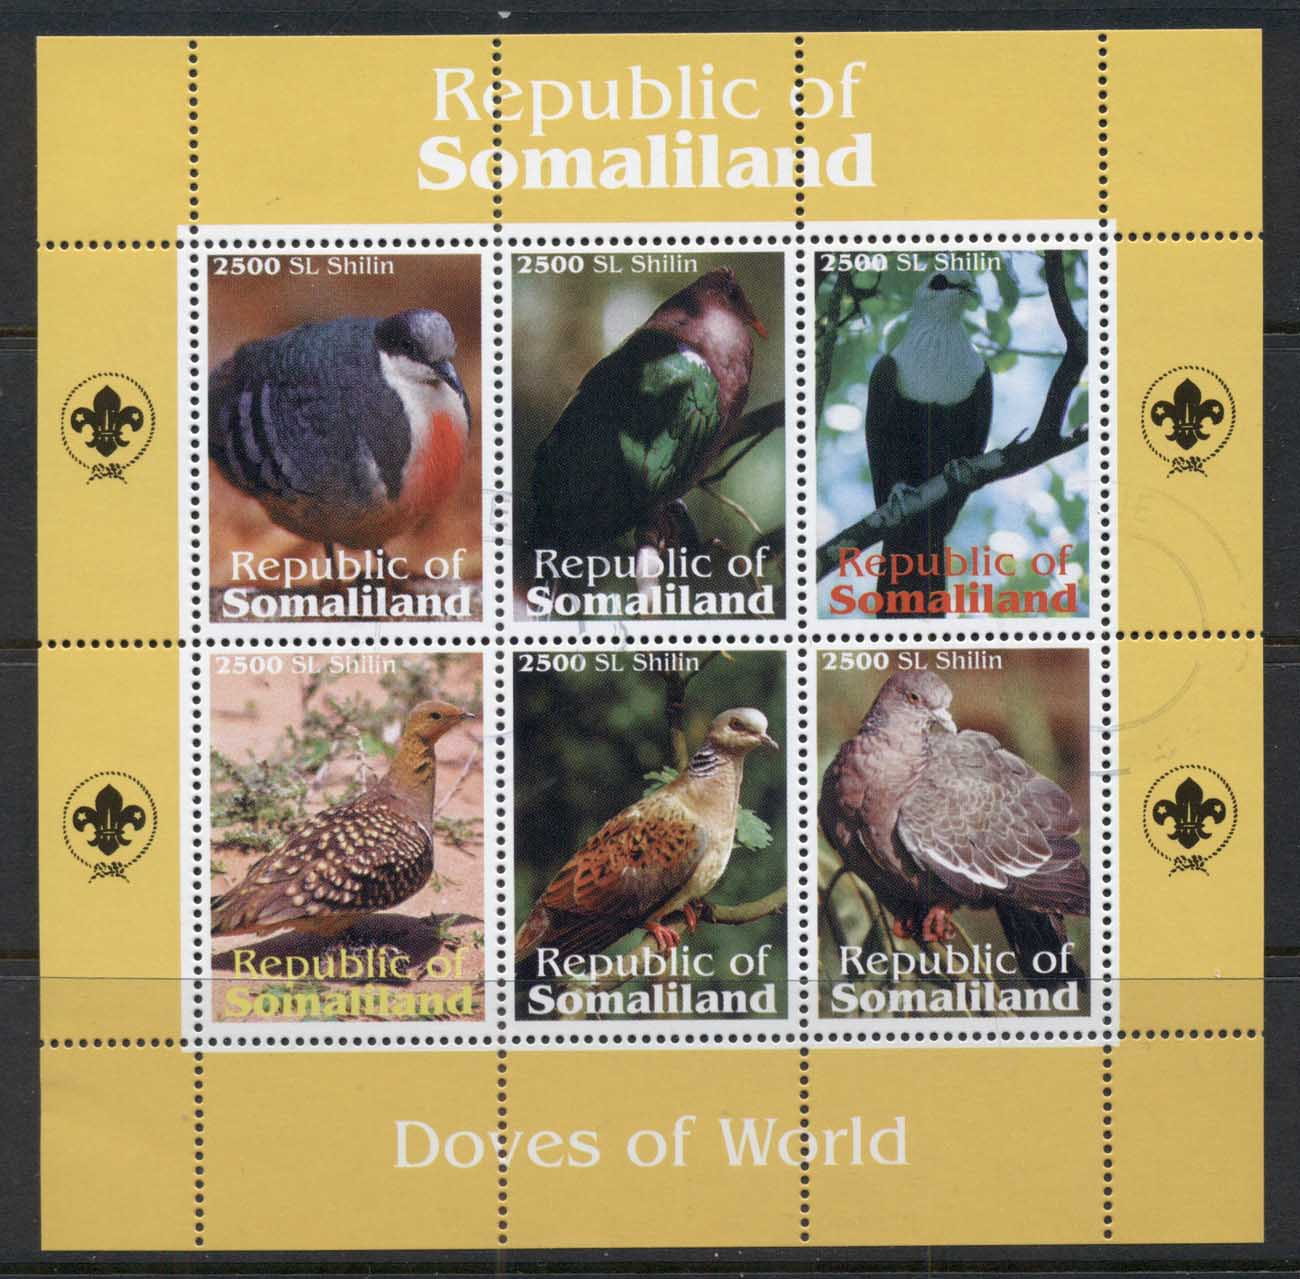 Somaliland 2010c. Birds, Doves of the World MS CTO